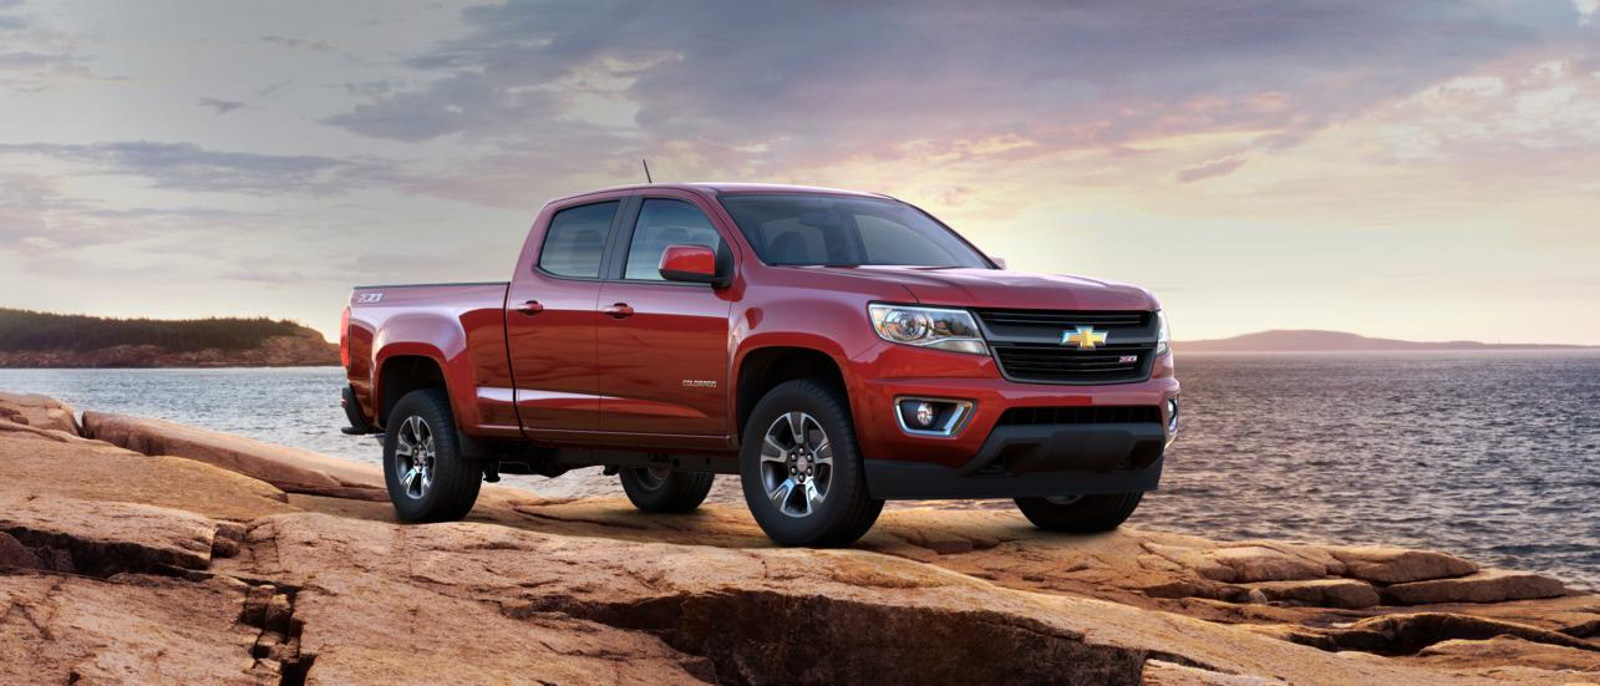 2017 chevy colorado is coming to bradenton and memphis. Black Bedroom Furniture Sets. Home Design Ideas